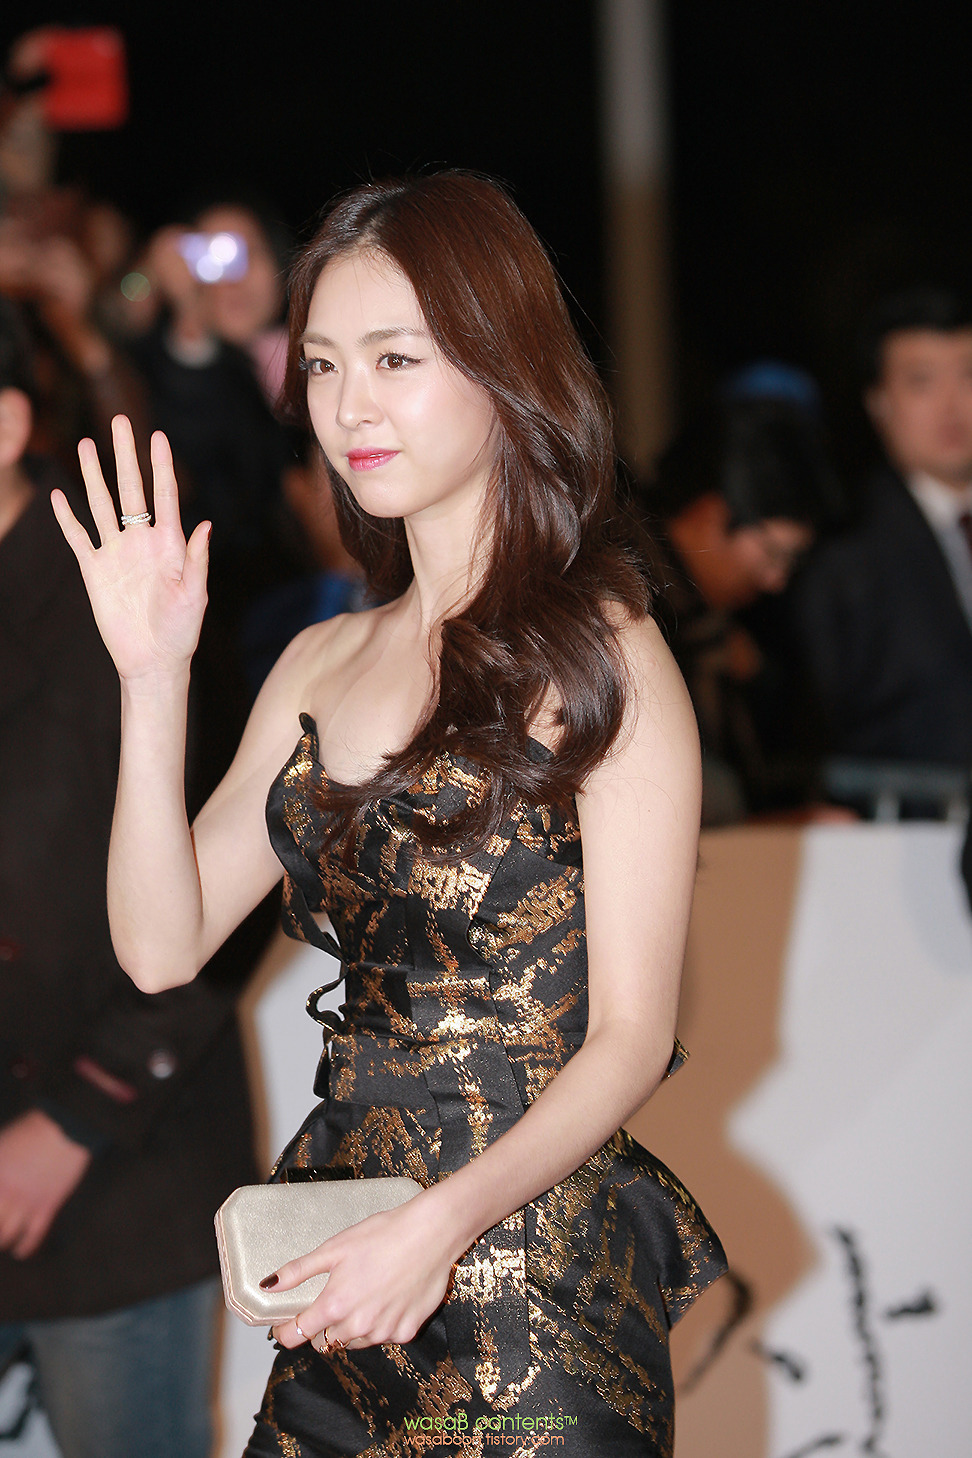 Pin by Pi Blue on Jessica - Jung SooYeon | Girls